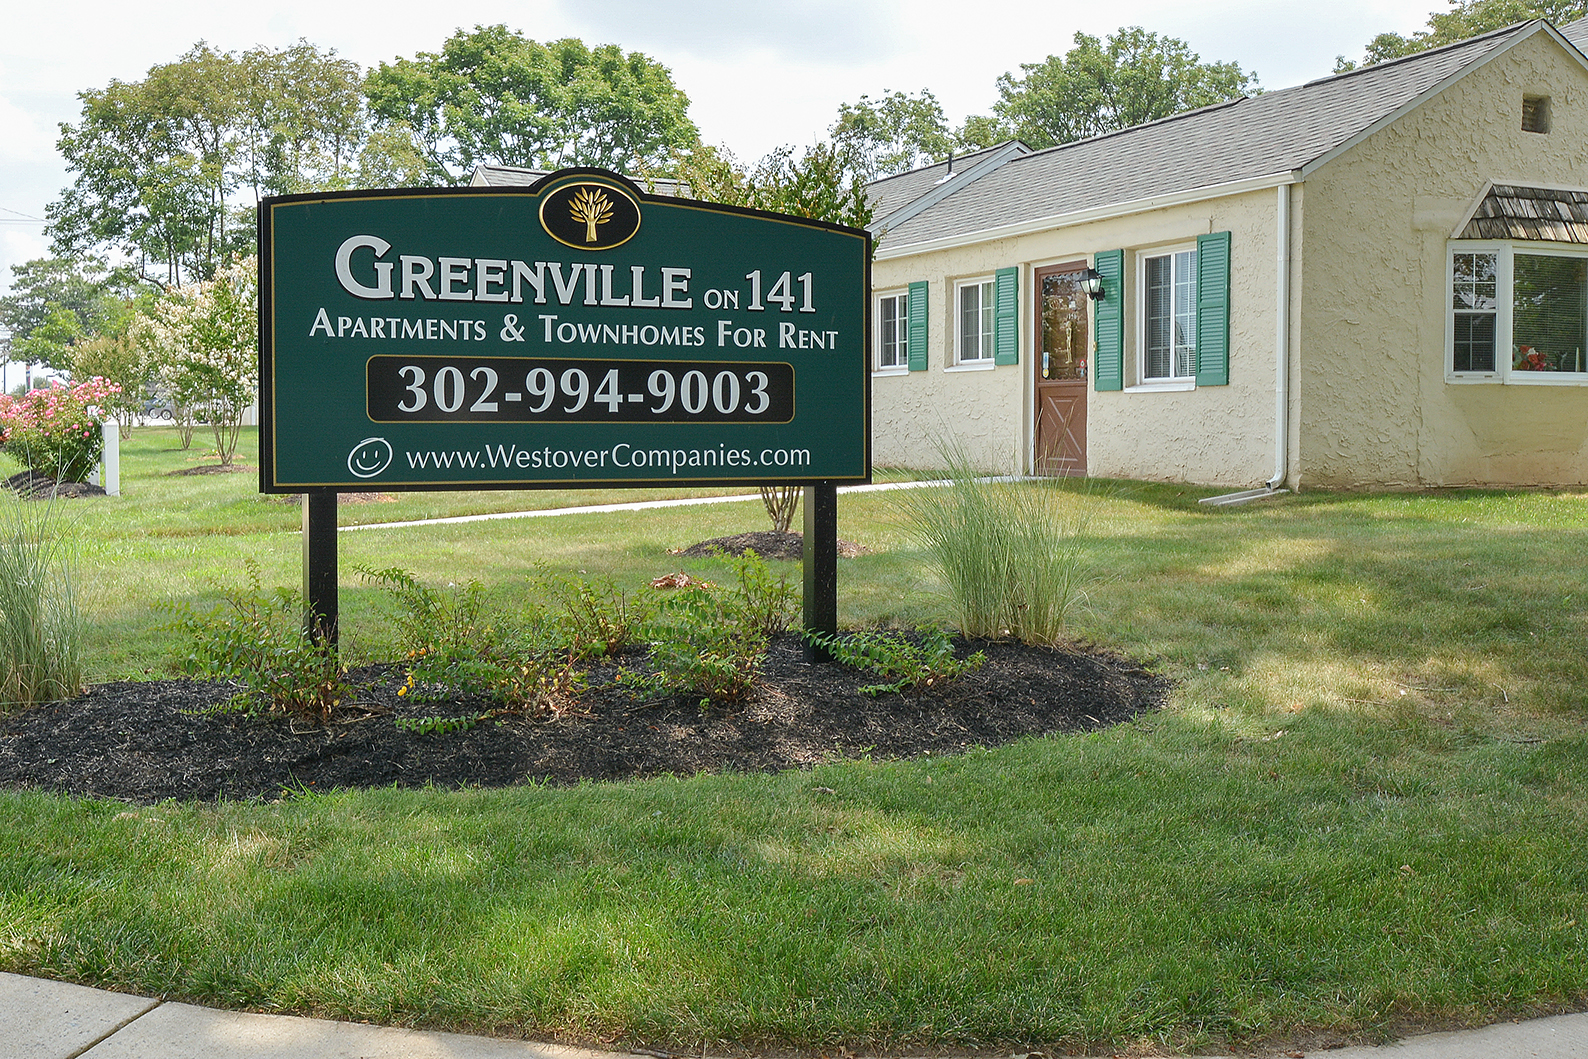 Greenville on 141 Apartments, Wilmington, DE | Wilmington, DE Apartments for Rent